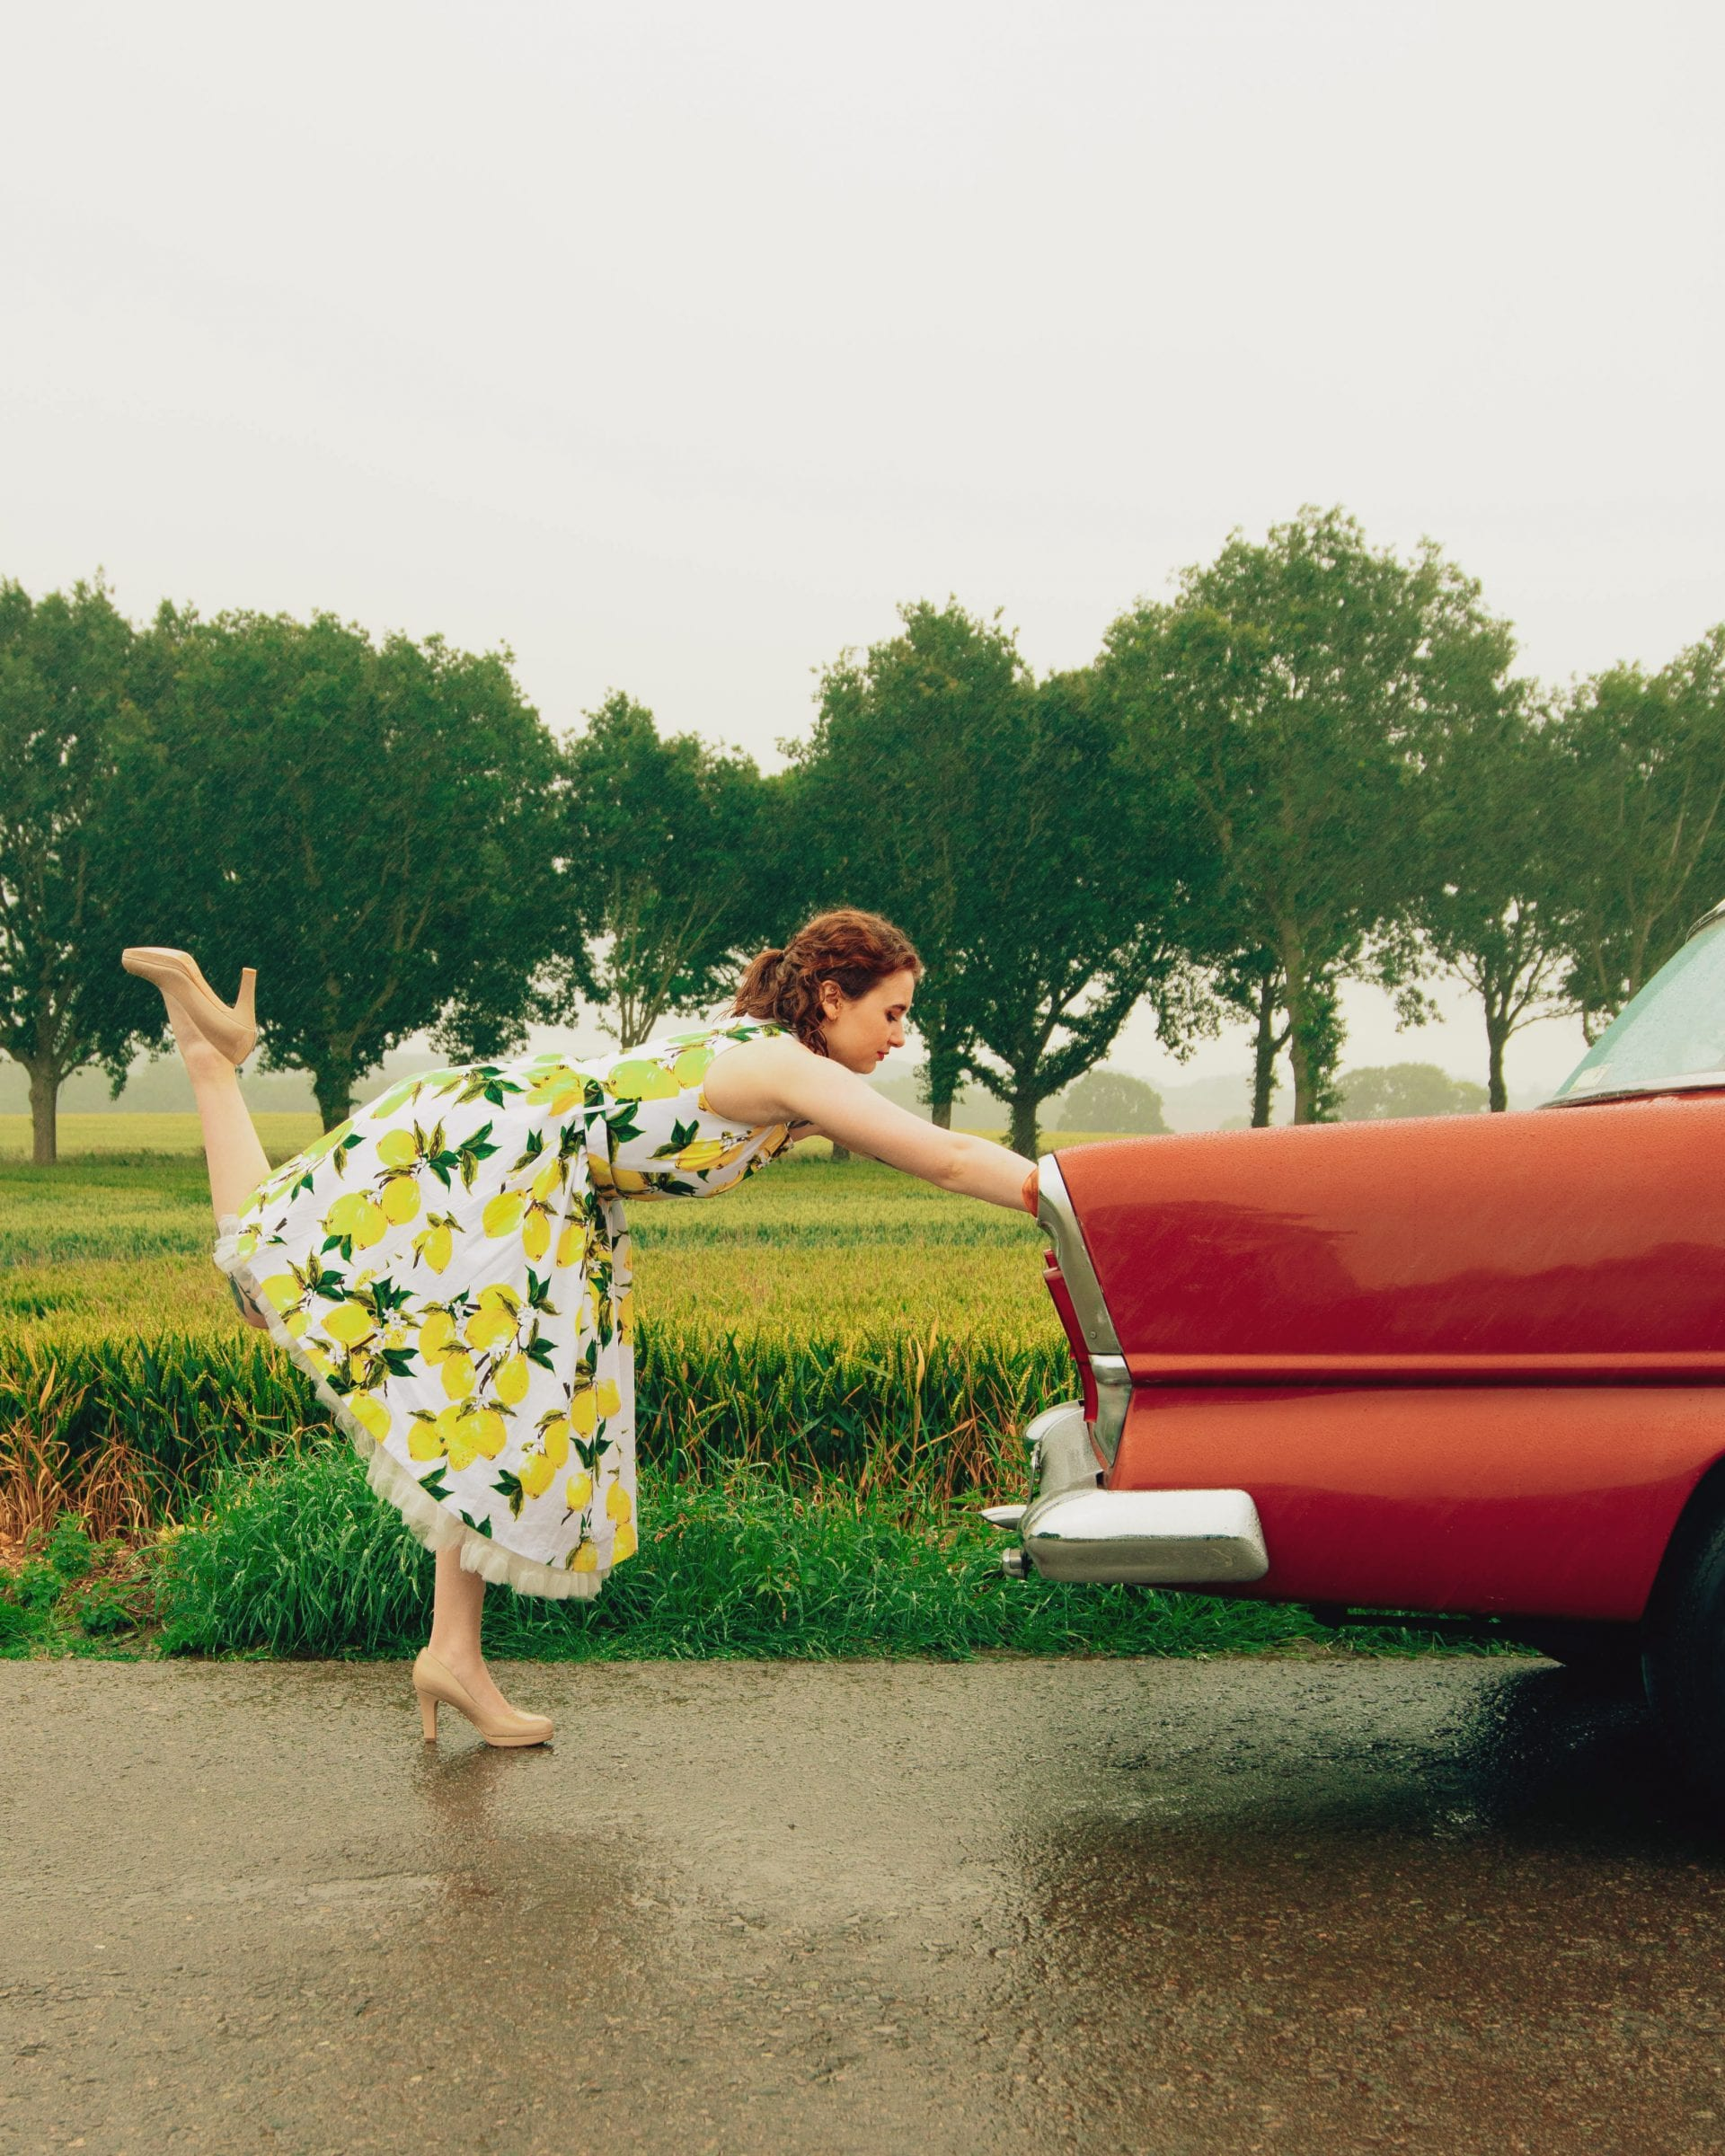 A girl pushing a broken down vintage car in a blog about feminism